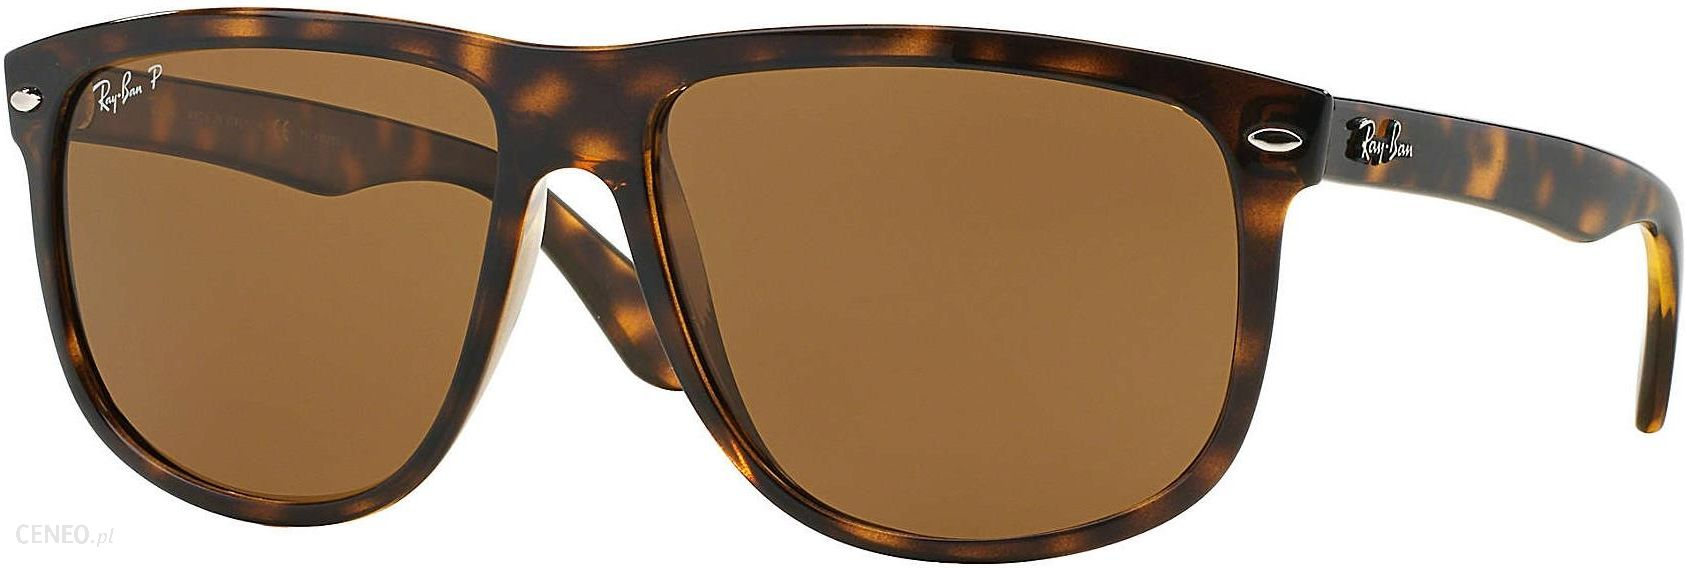 f23be48c96 Ray-Ban RB4147 710 57 60 - Ceny i opinie - Ceneo.pl